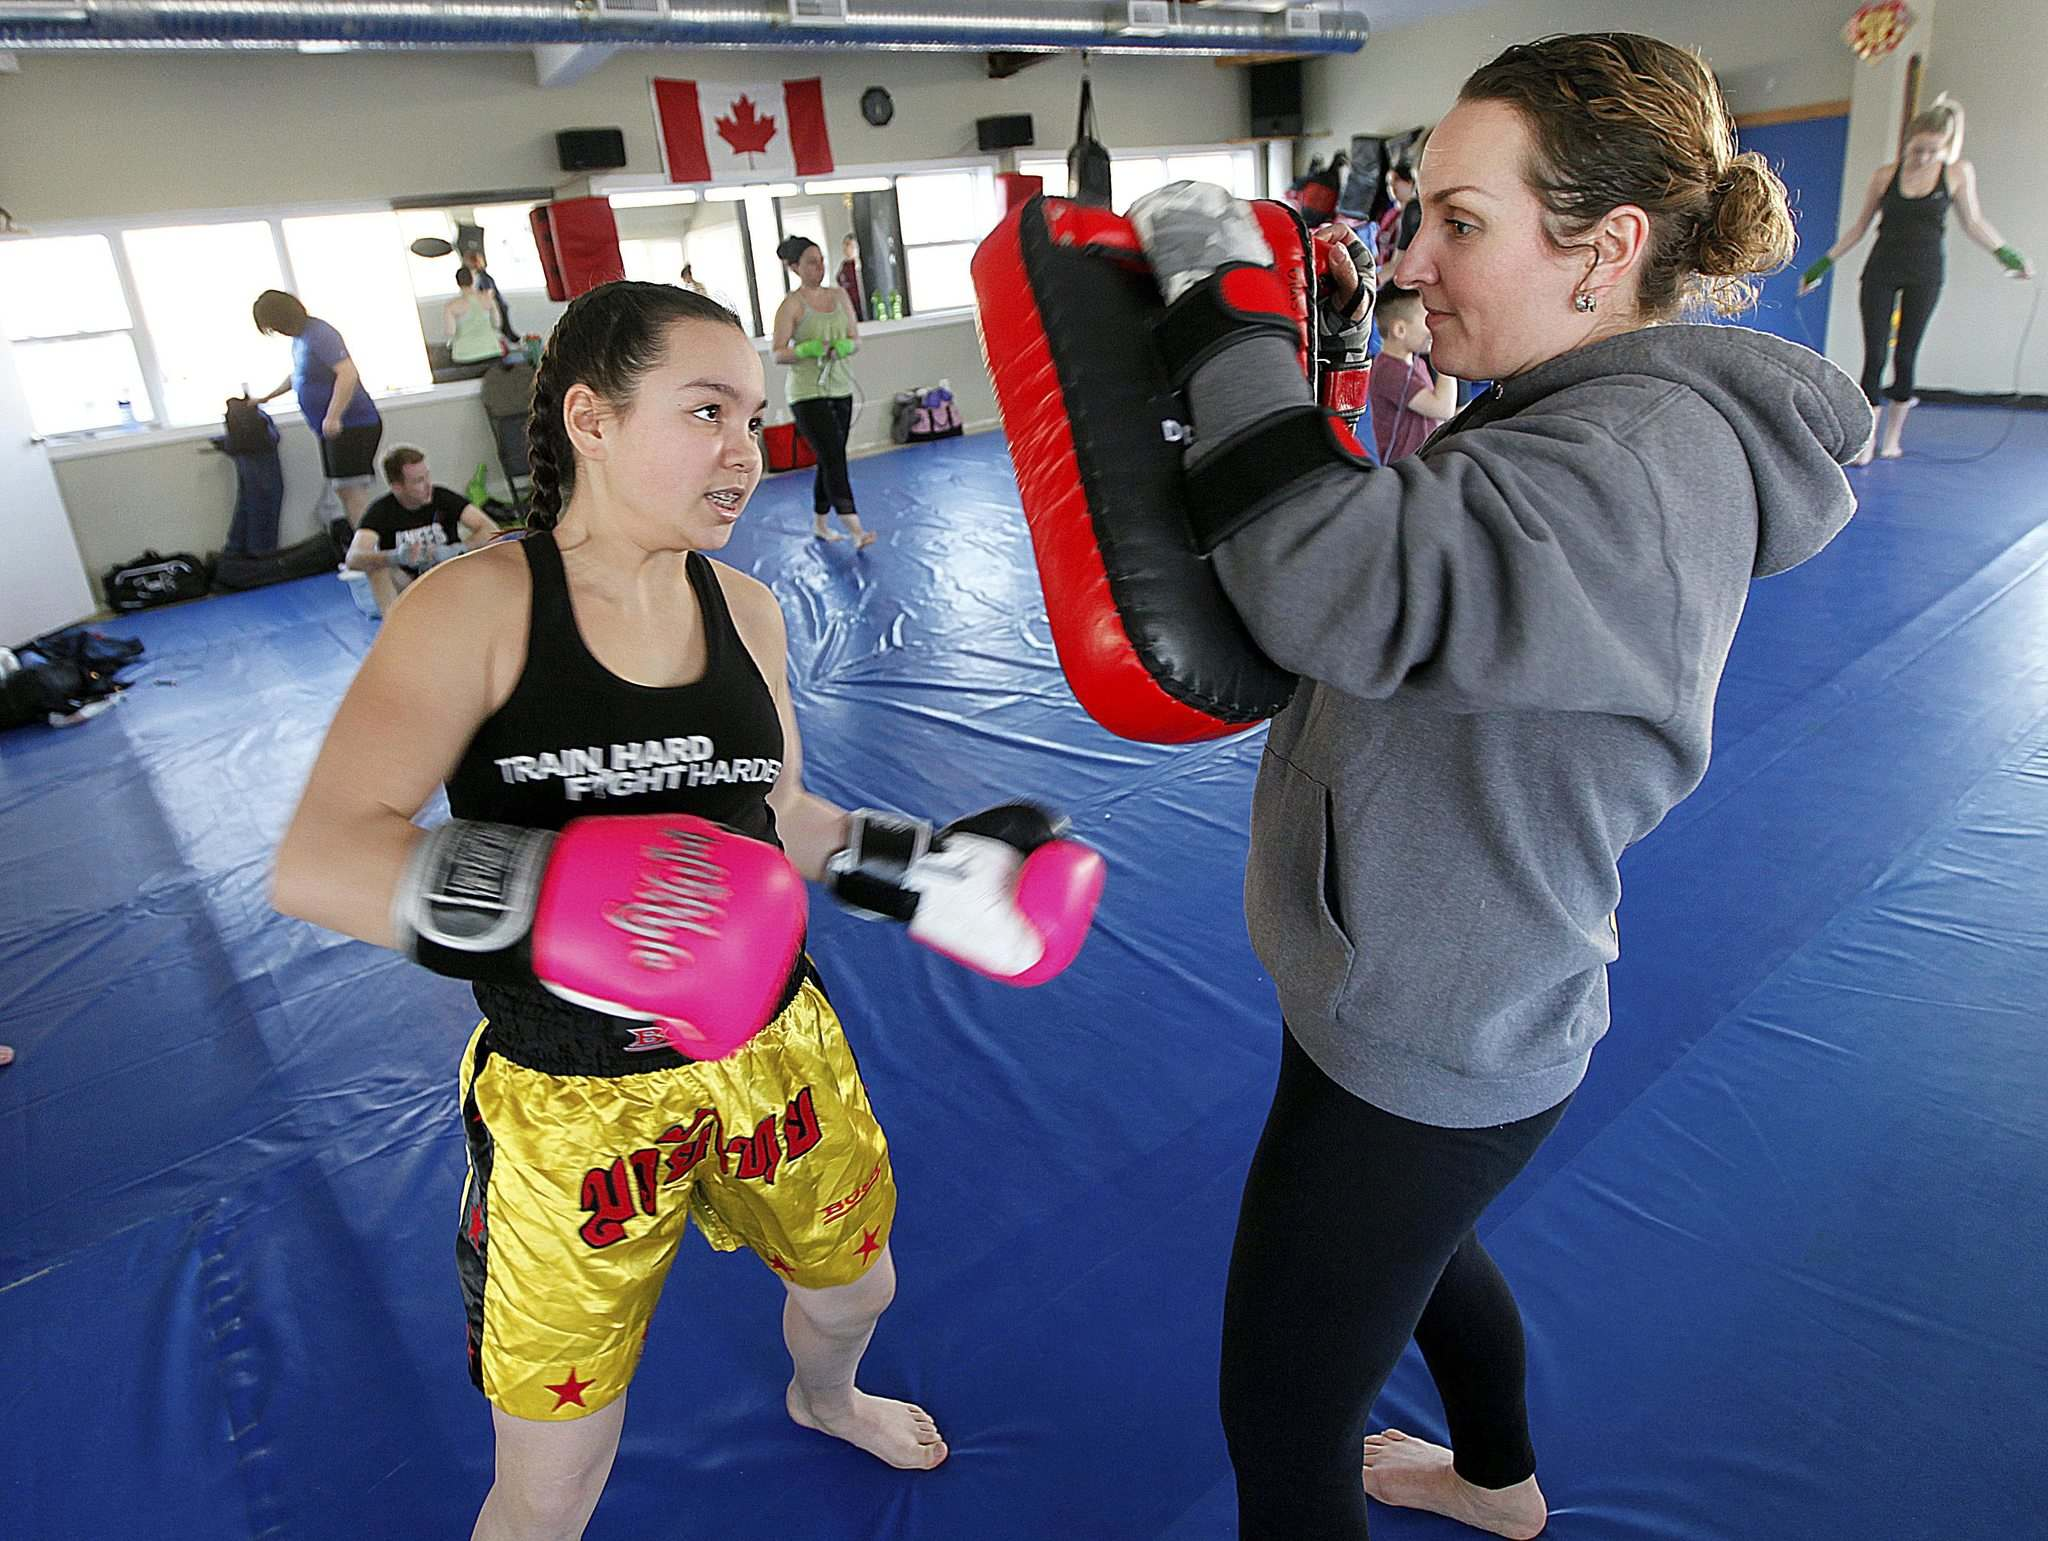 PHIL HOSSACK / WINNIPEG FREE PRESS</p><p>Jenelle Vincent-Oasis hold the pads while her daughter Jada, 11, delivers a series of punches and kicks during warm-up.</p>